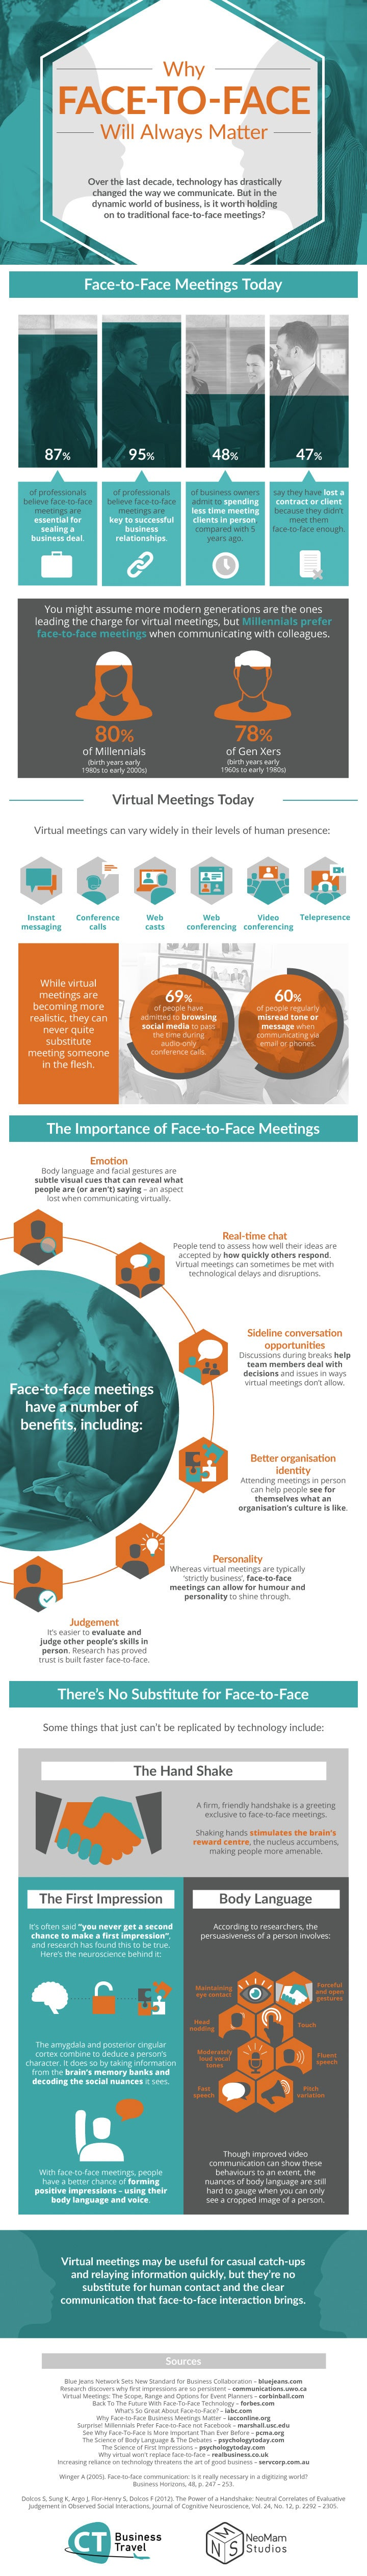 Why Face-to-Face Communication Won't Disappear (Infographic)